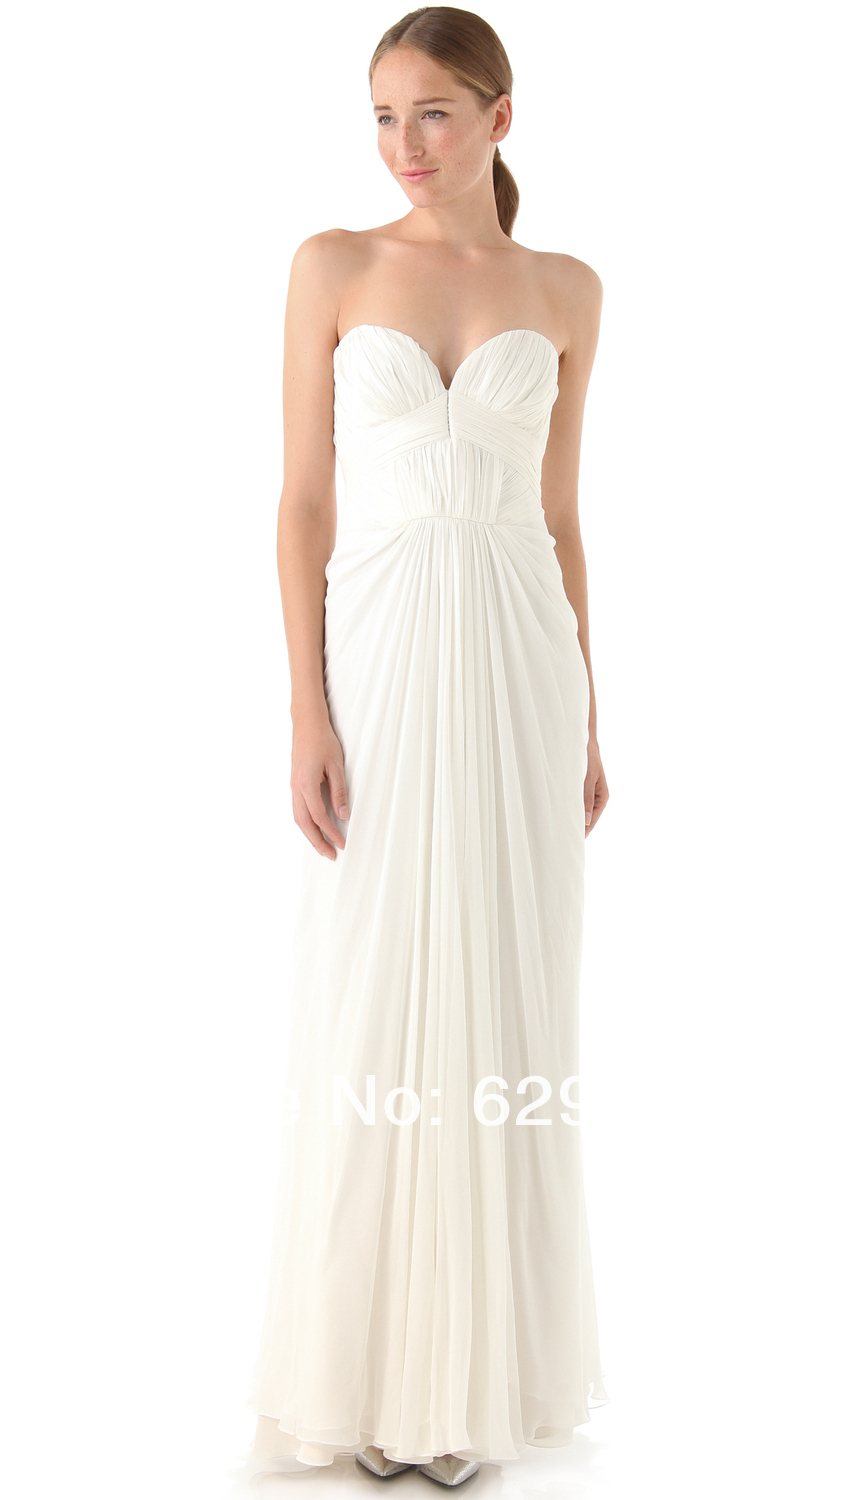 fashionsexyhot sale 2015 wedding dresses beach wedding